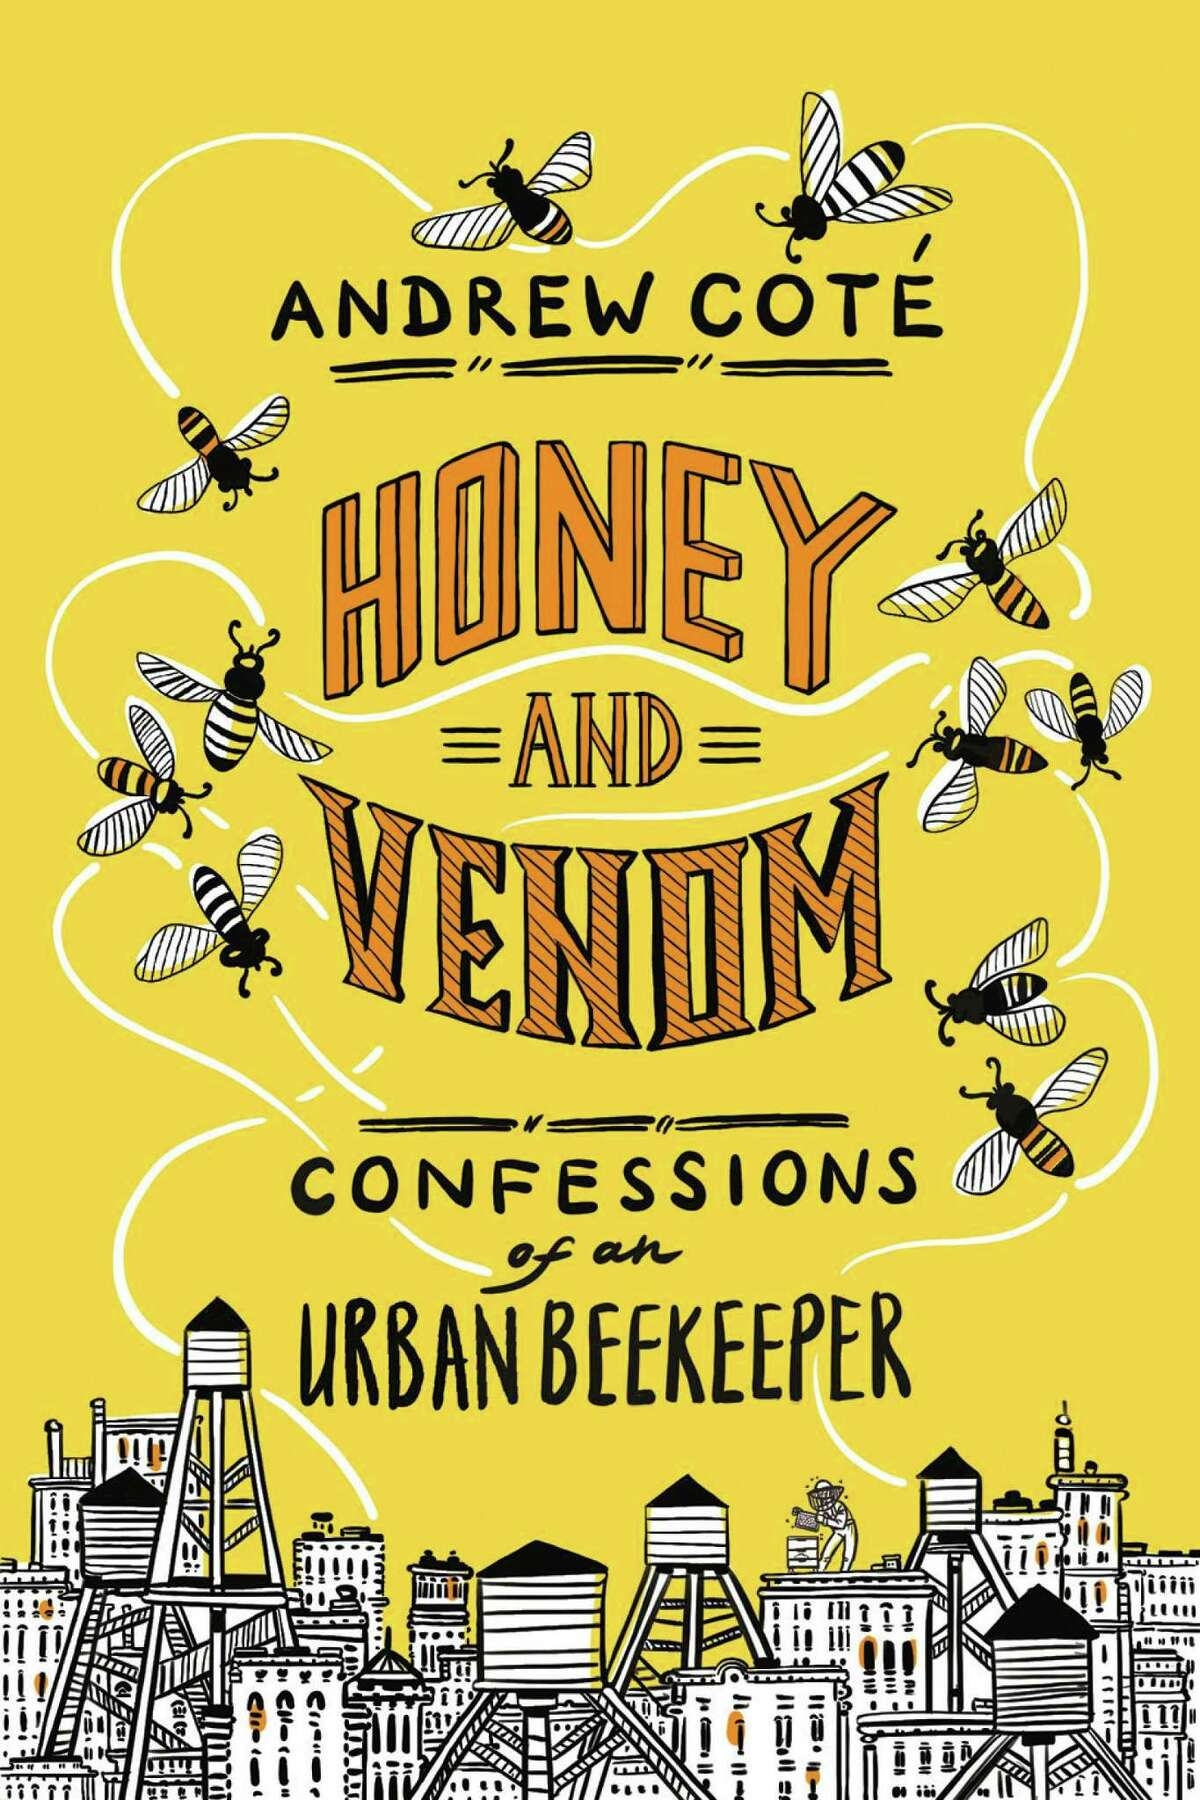 Norwalk's Andrew Coté published a memoir about his life as an urban beekeeper and where his buzzing profession has taken him around the world on June 9.